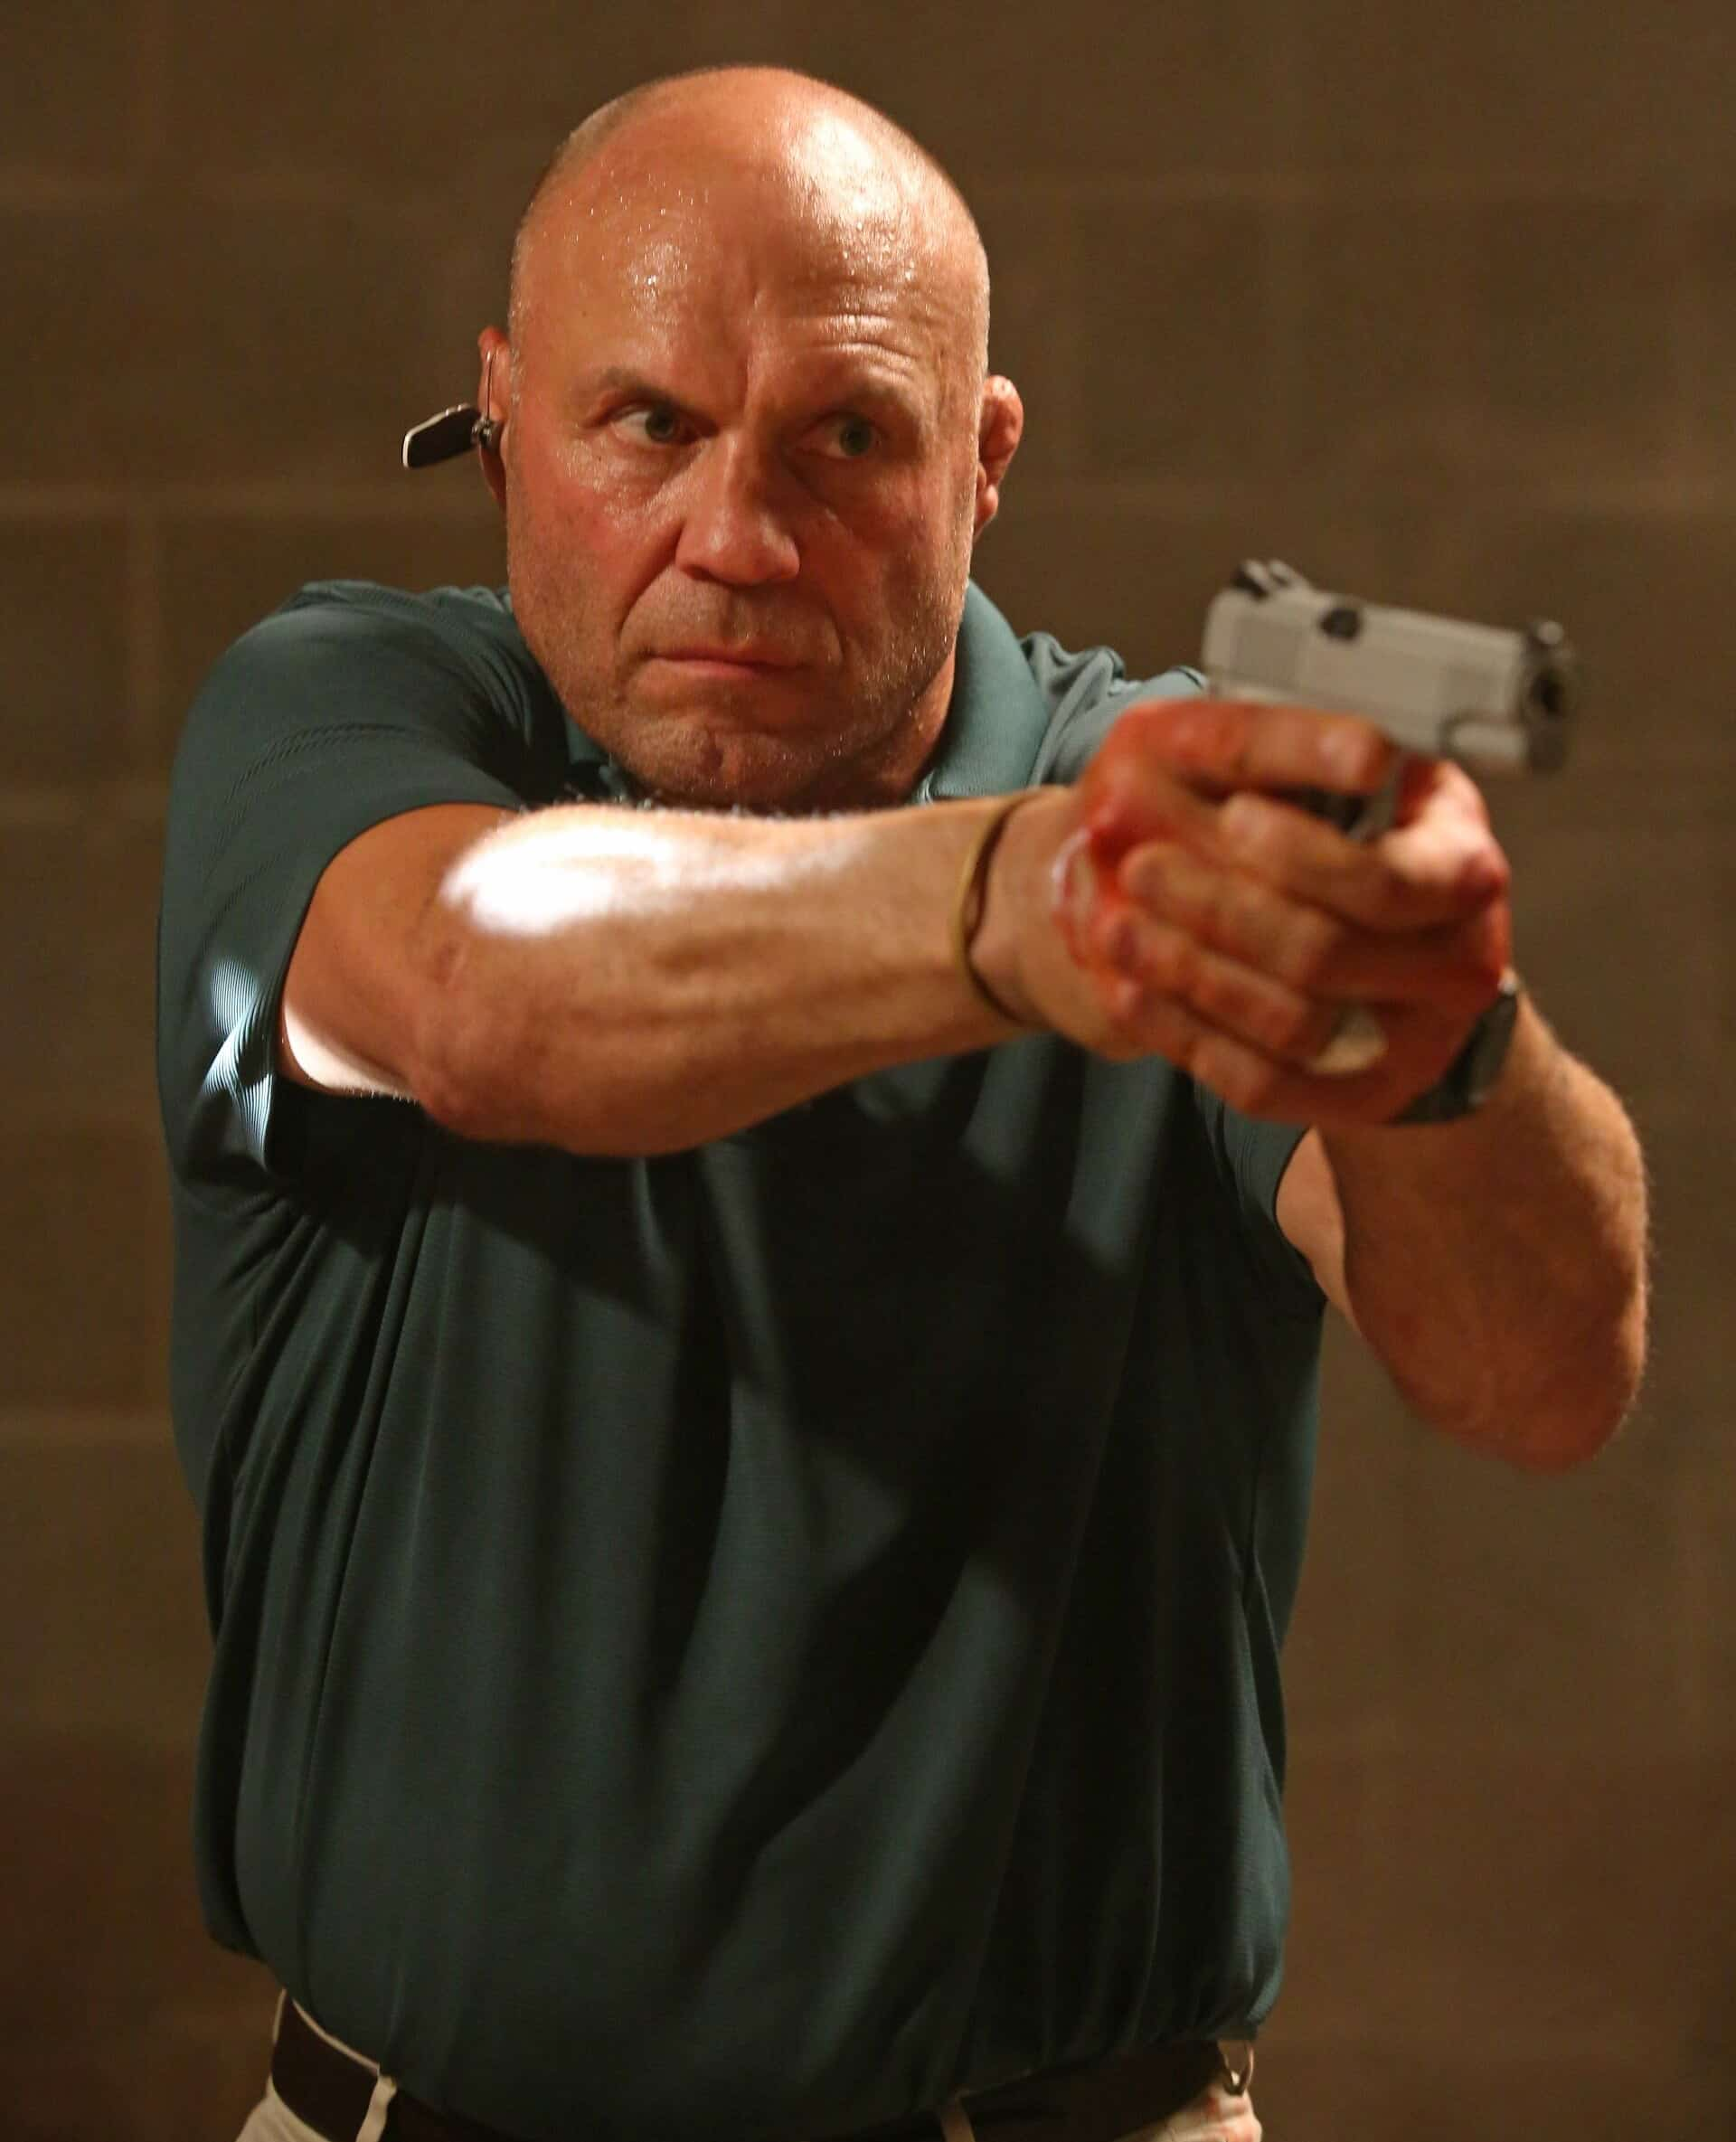 Expendables 4 Script Is Great, but the film isn't a for sure thing yet: Randy Couture